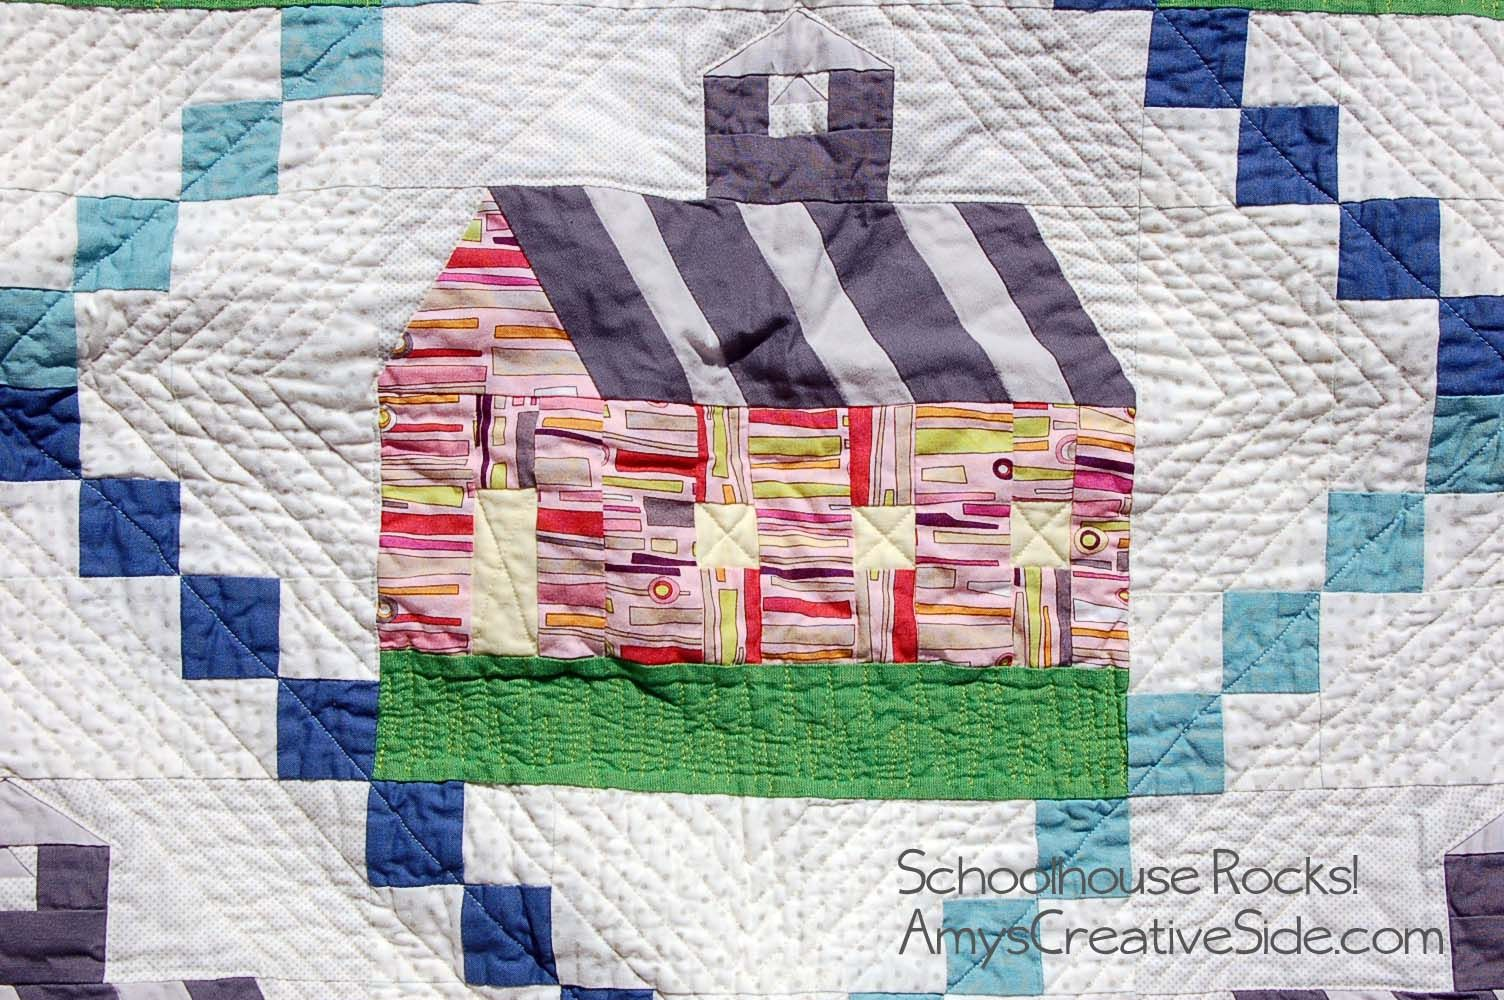 Schoolhouse Rocks from Amy's Creative Side-